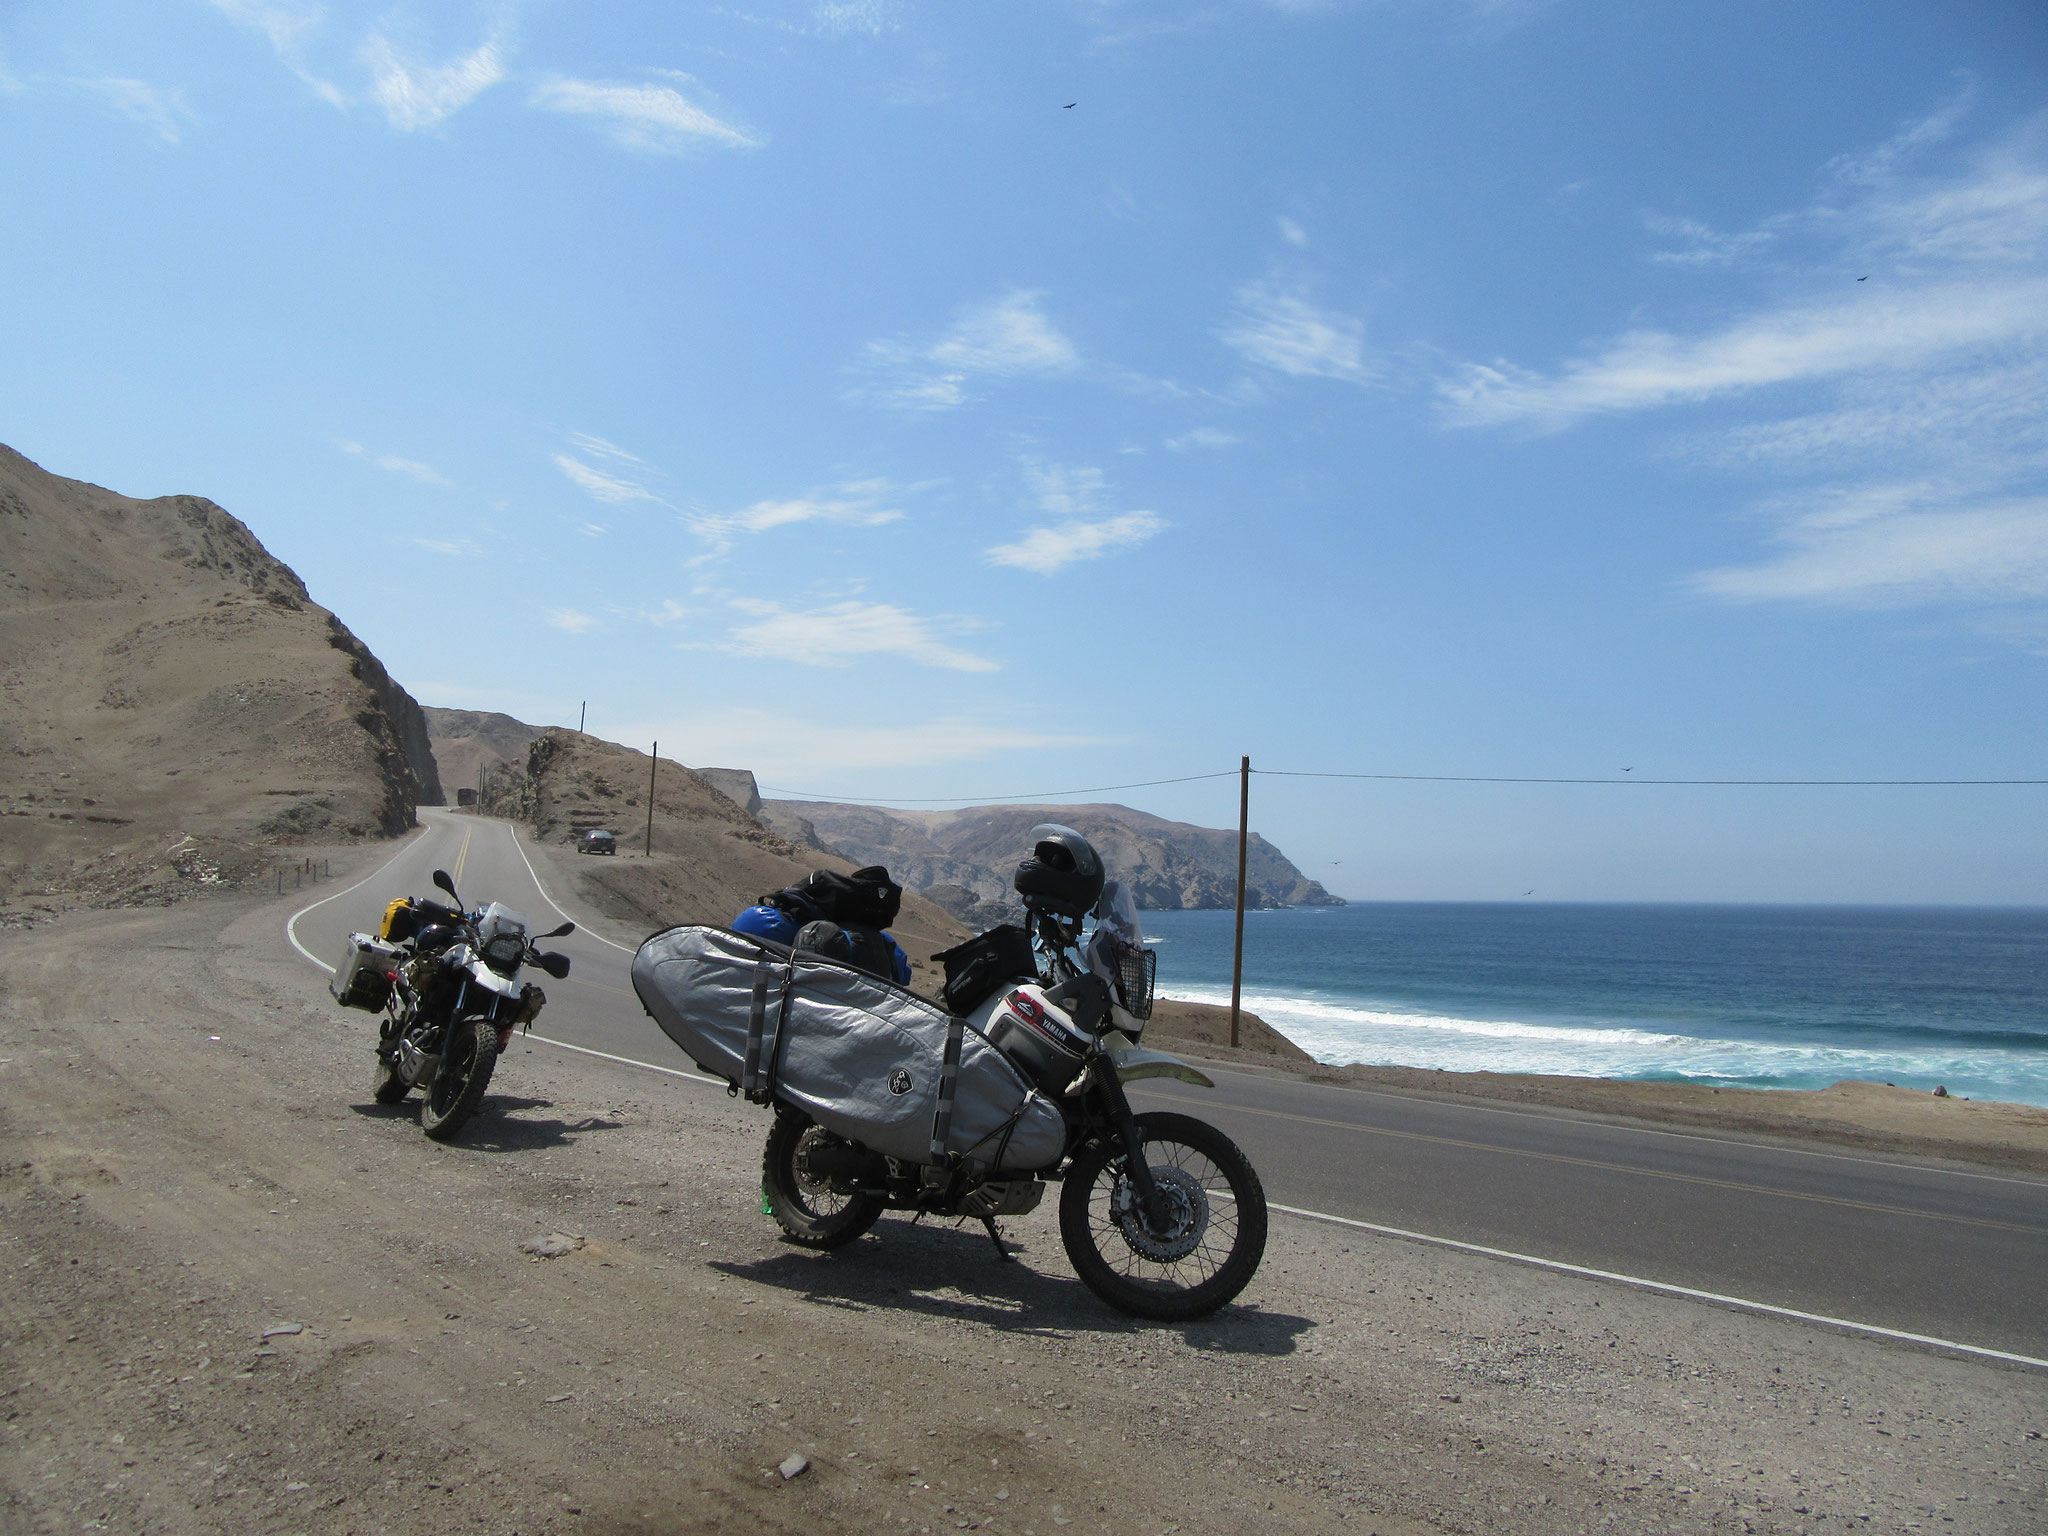 Driving through the South of Peru